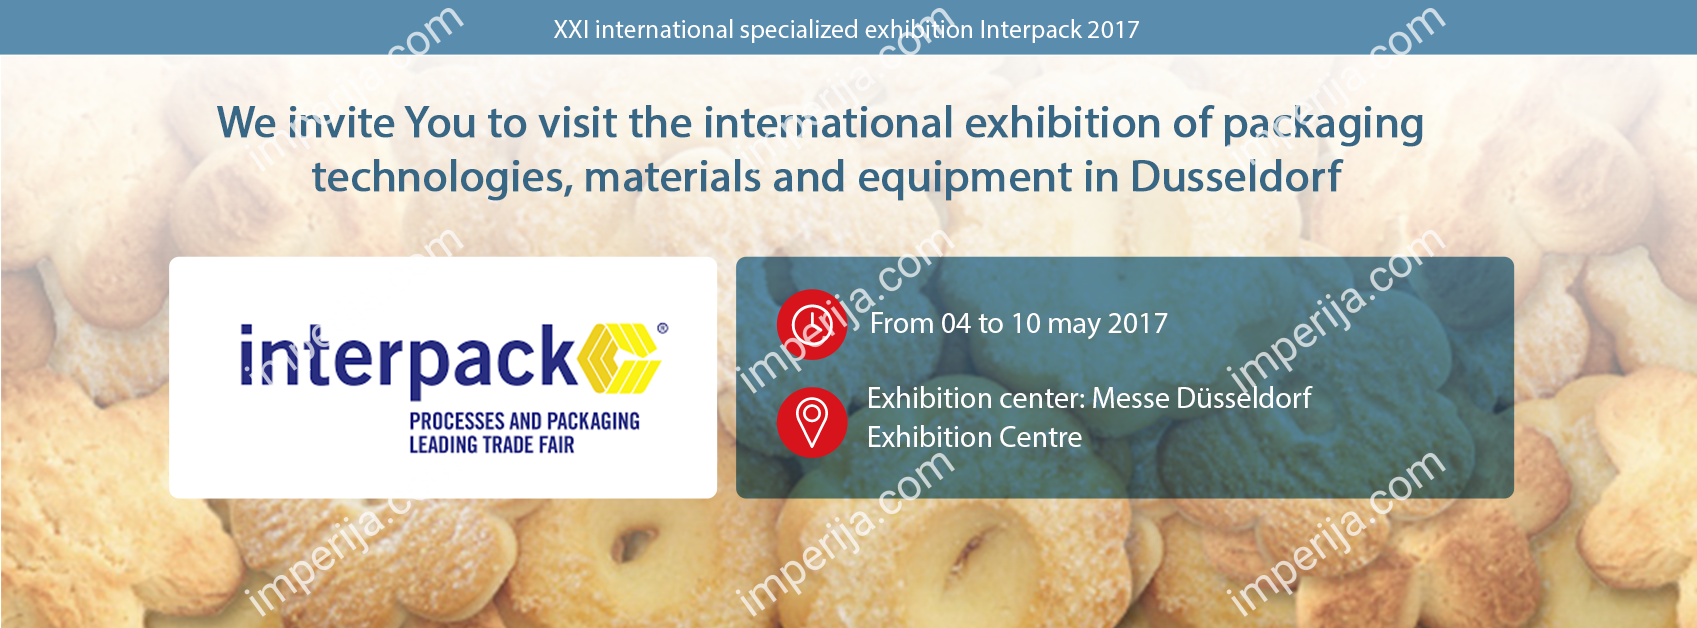 Invitation to Interpack 2017